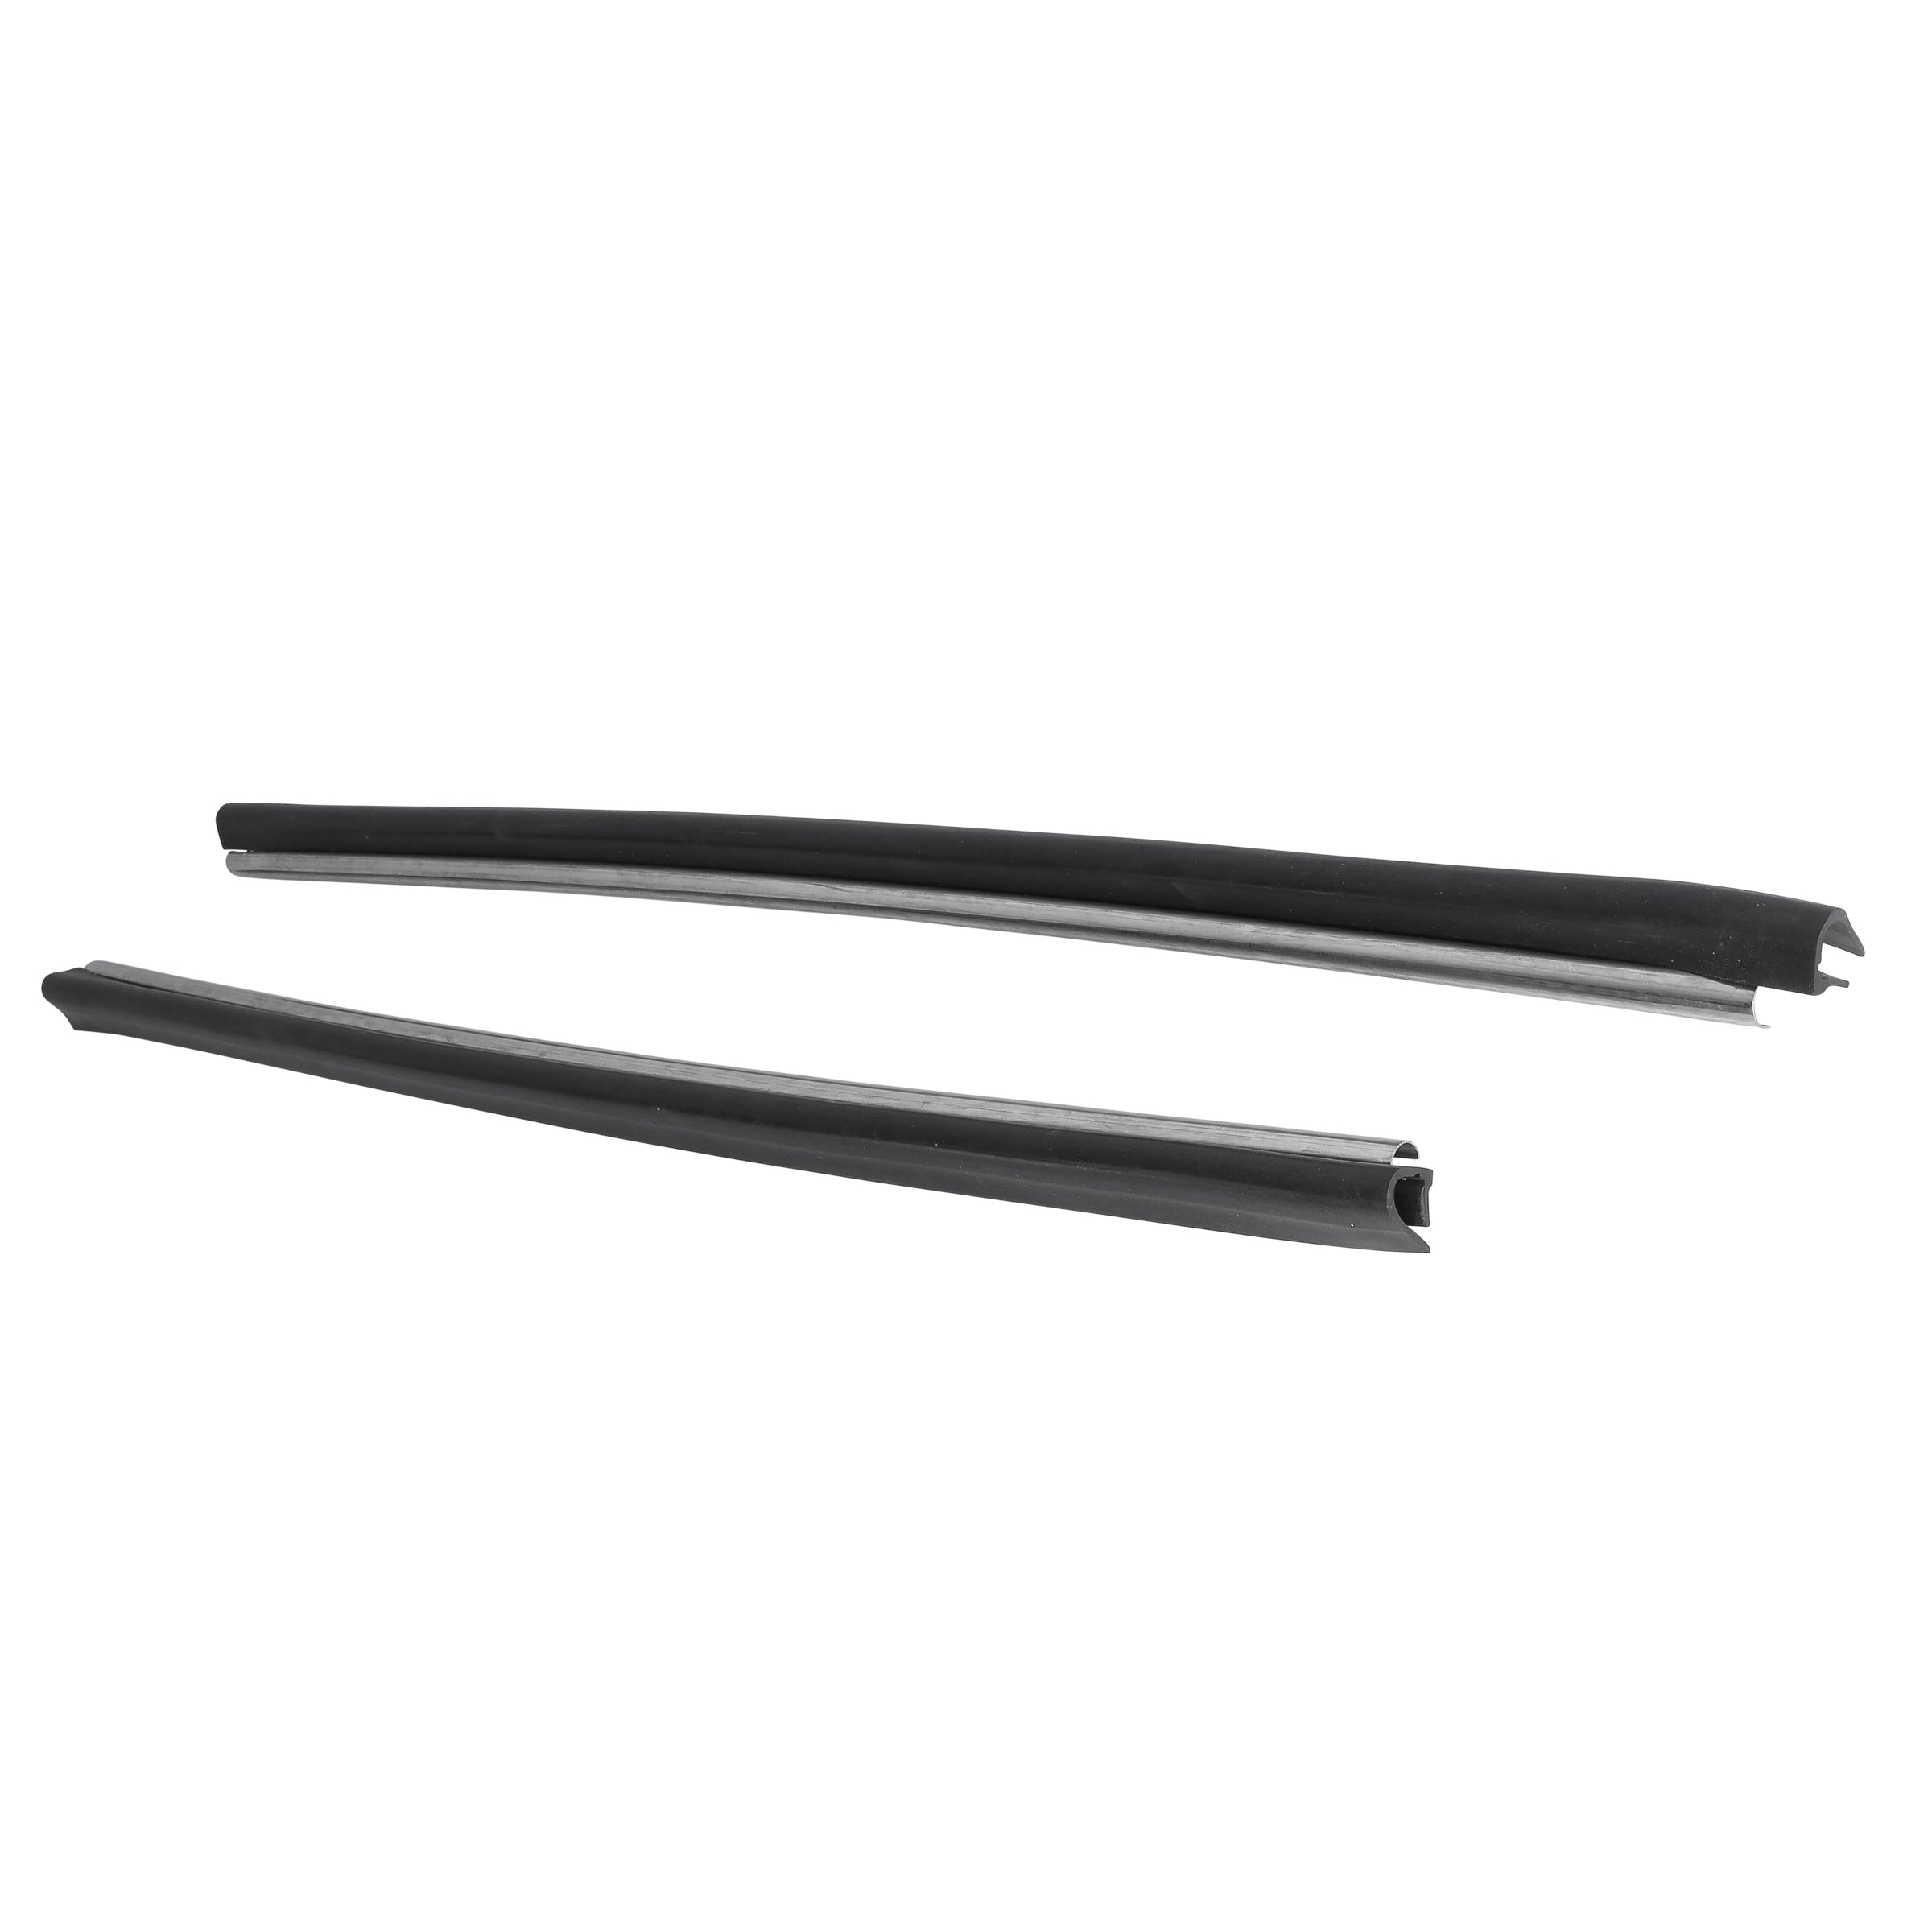 Door Scuff (Sill) Plates • 1938-39 Phaeton (Front) & 1938-39 Convertible Sedan (Front)